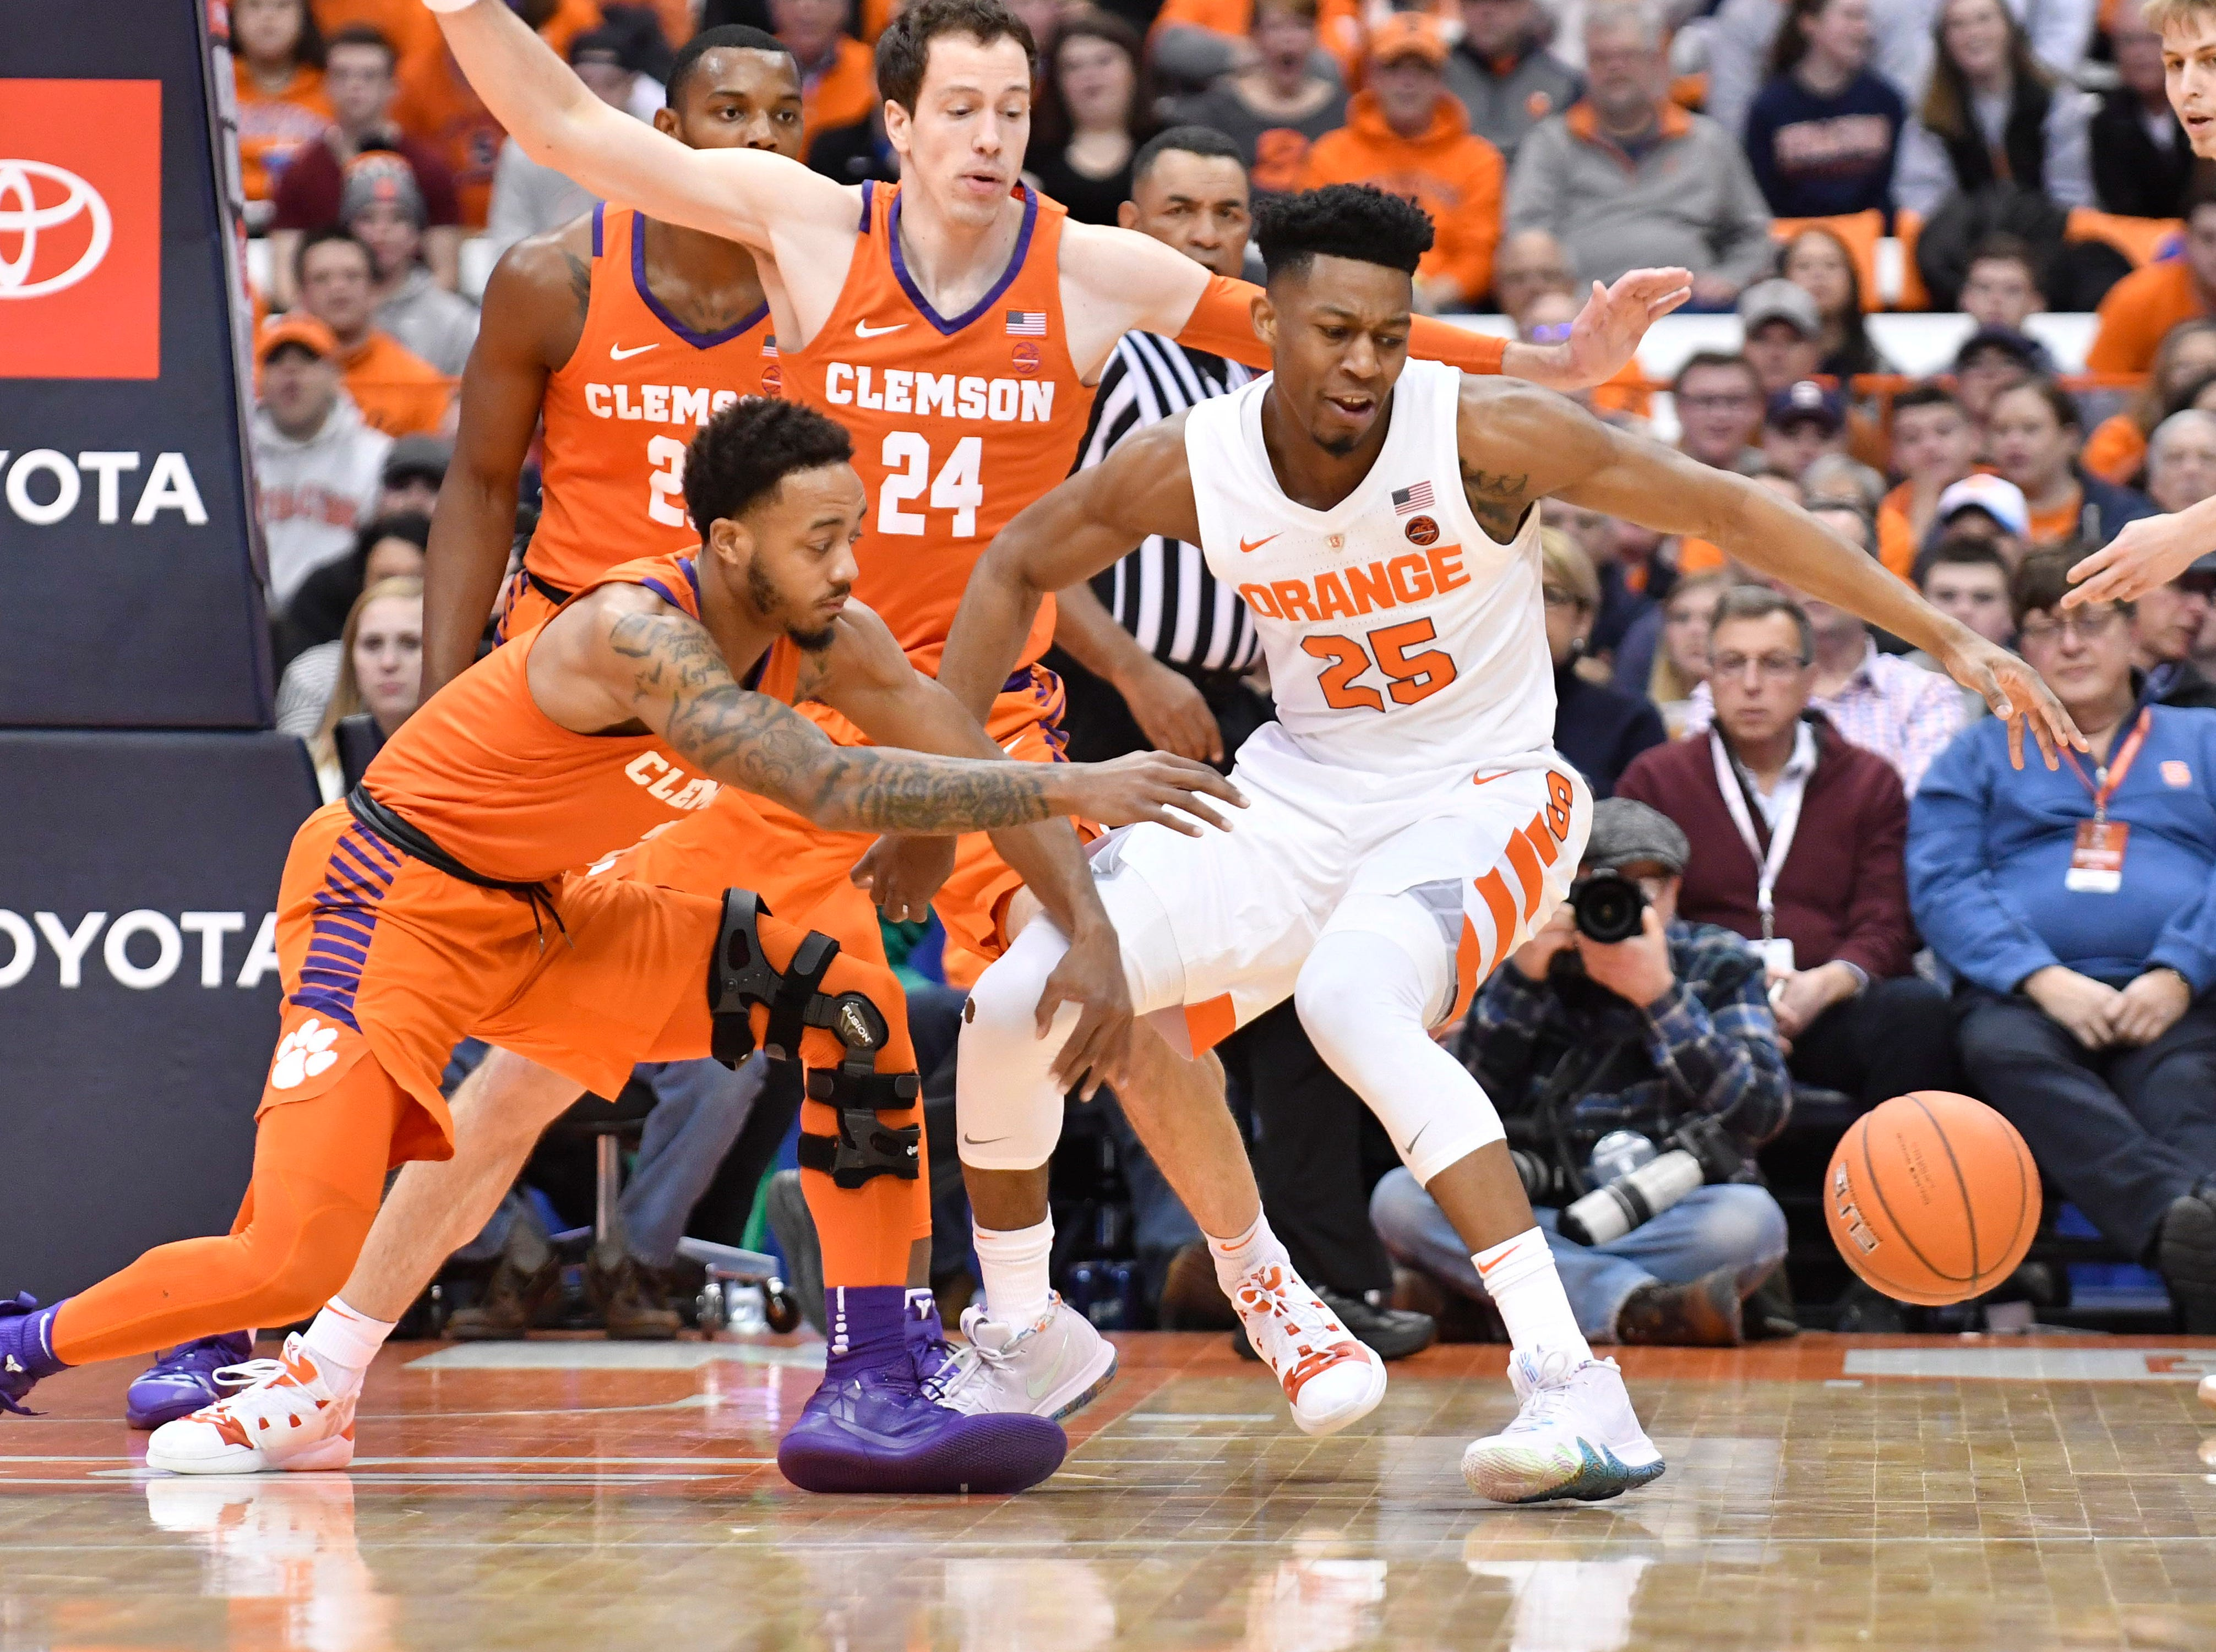 Jan 9, 2019; Syracuse, NY, USA; Syracuse Orange guard Tyus Battle (25) and Clemson Tigers guard Marcquise Reed (2) pursue a loose ball during the first half at the Carrier Dome.